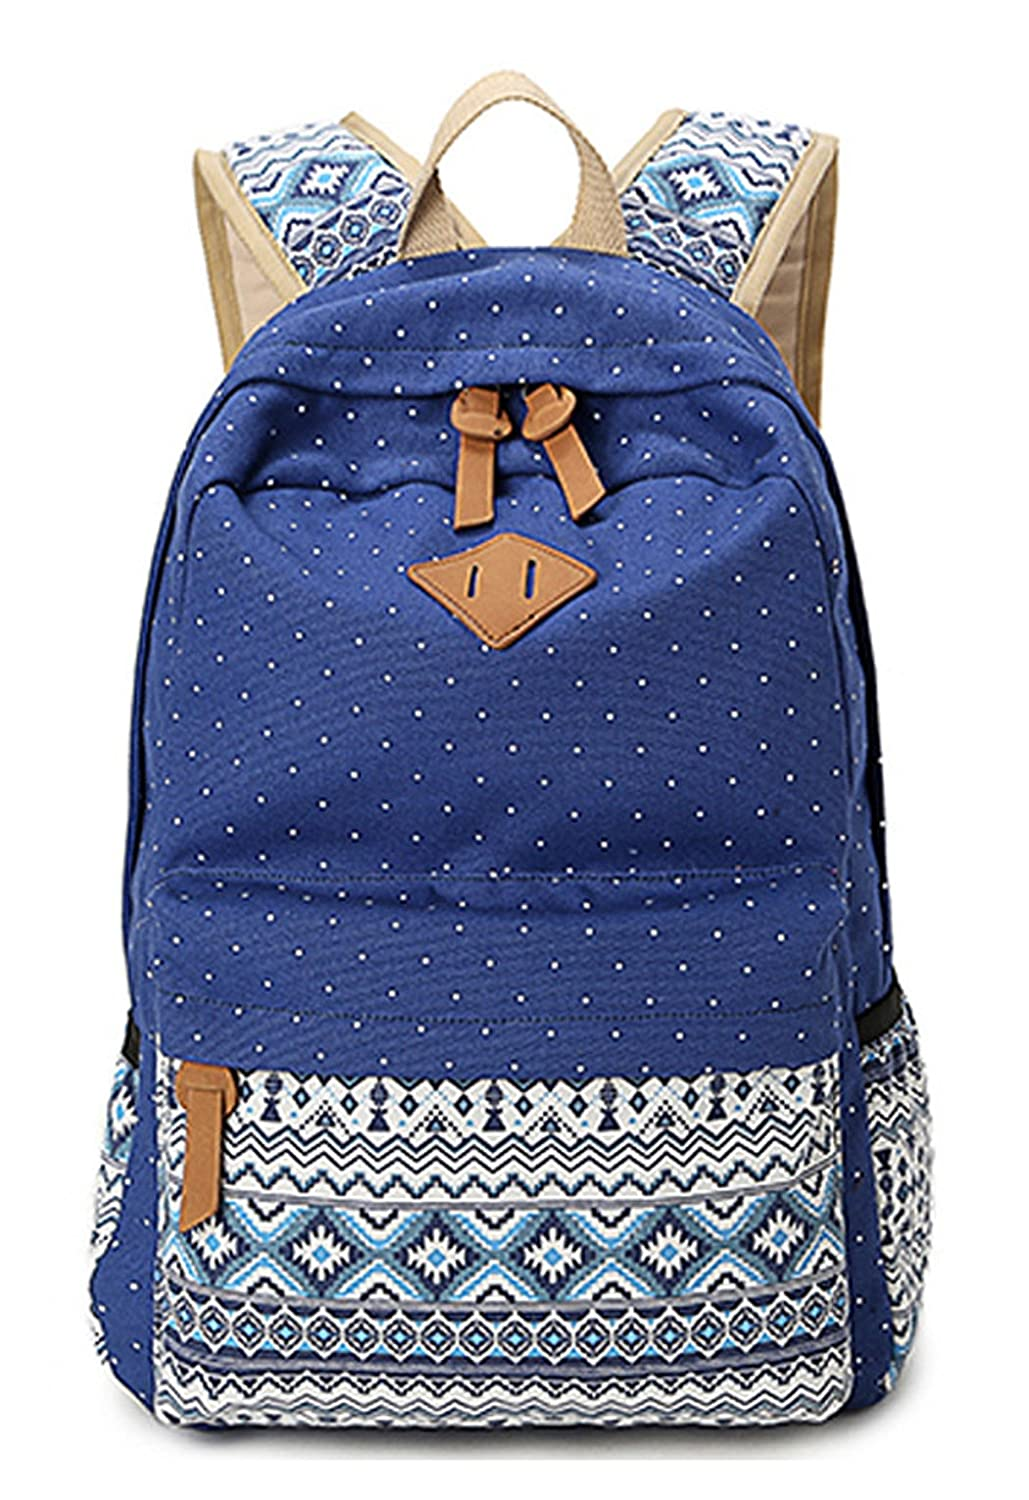 Longzibog Canvas 2016 New Backpack Bag, Fashion Cute Lightweight Backpacks for Teen Young Girls